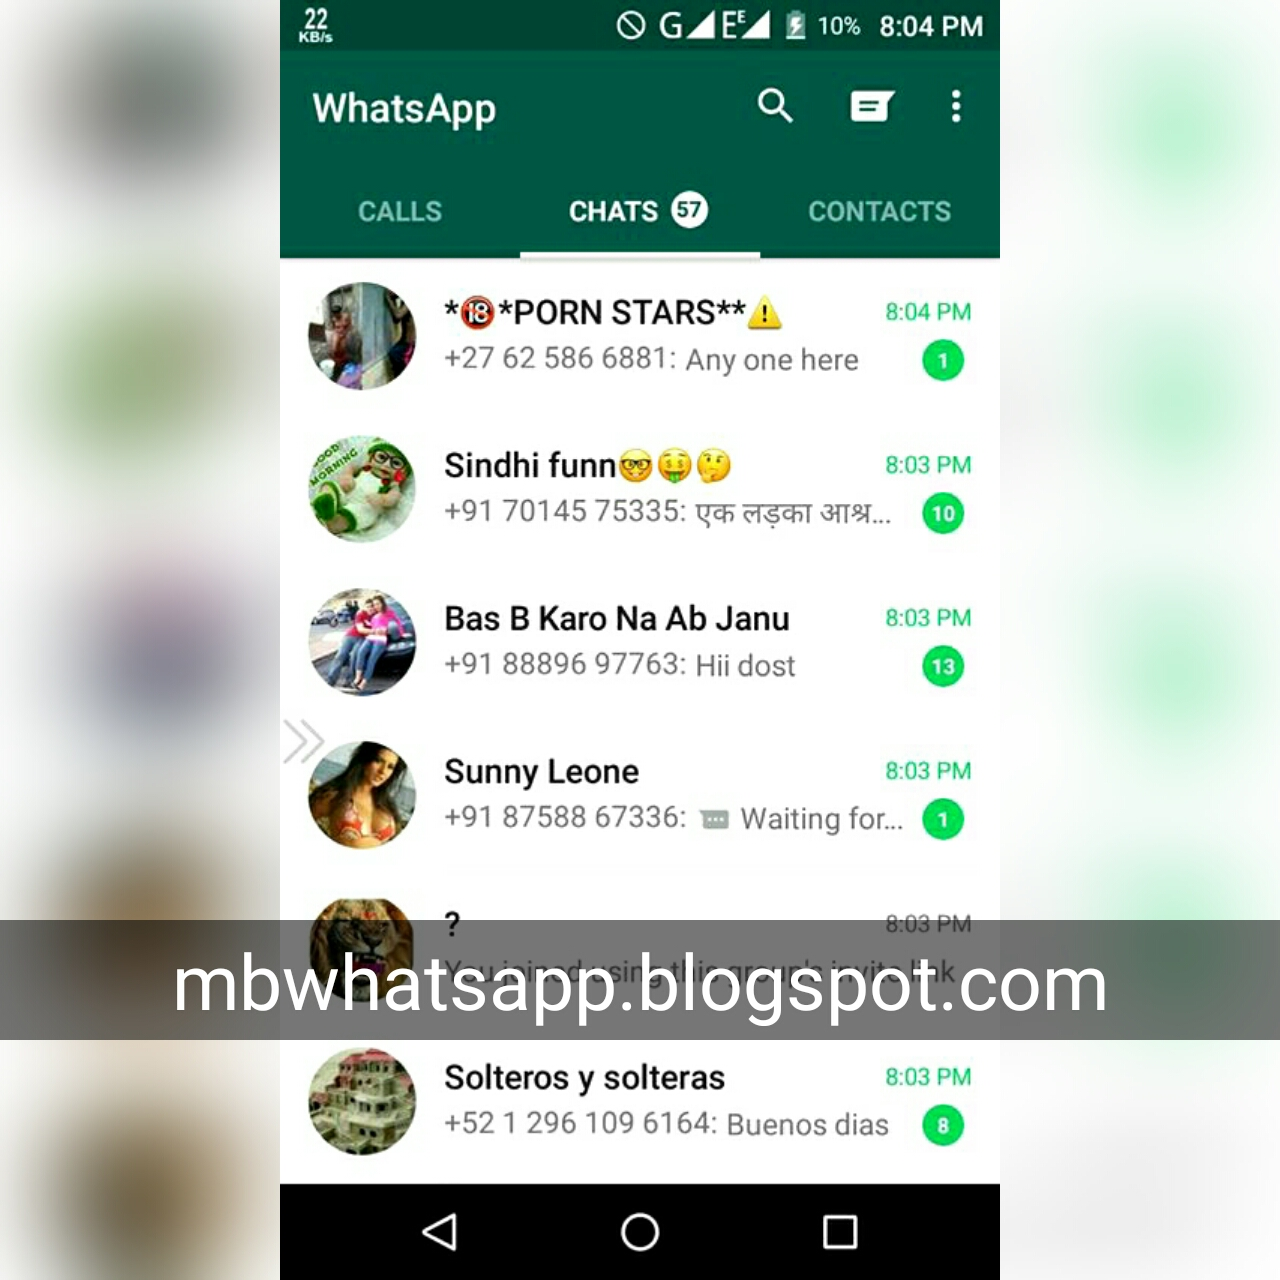 whatsapp group adult funny whatsapp group link whatsapp group add me whatsapp groups links whatsapp group list whatsapp group for fun whatsapp group chat